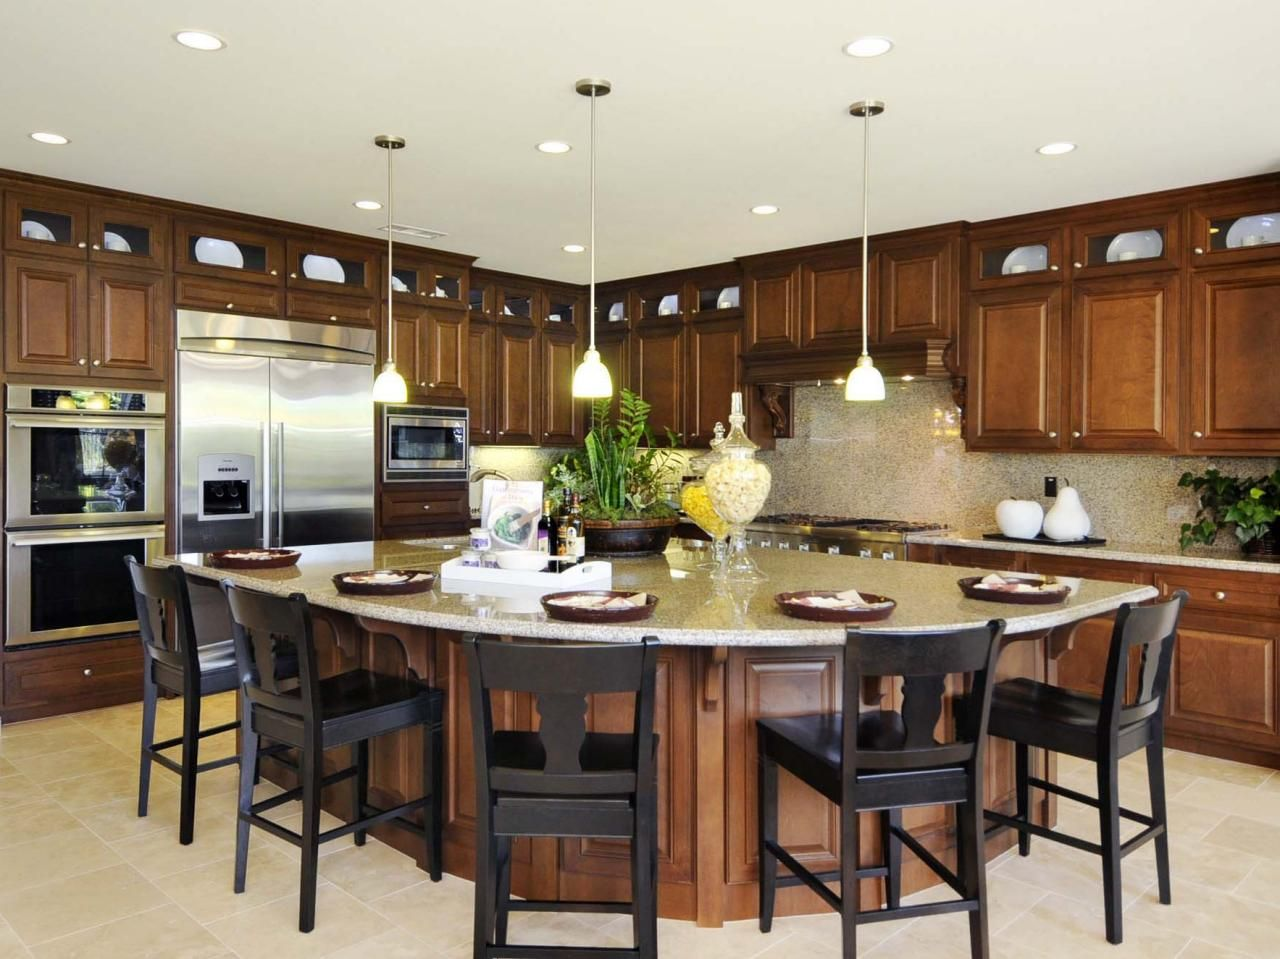 Kitchen Island Designs Kitchen Island Design Ideas: Pictures, Options & Tips |  tips kitchen designs - NLQYTLB